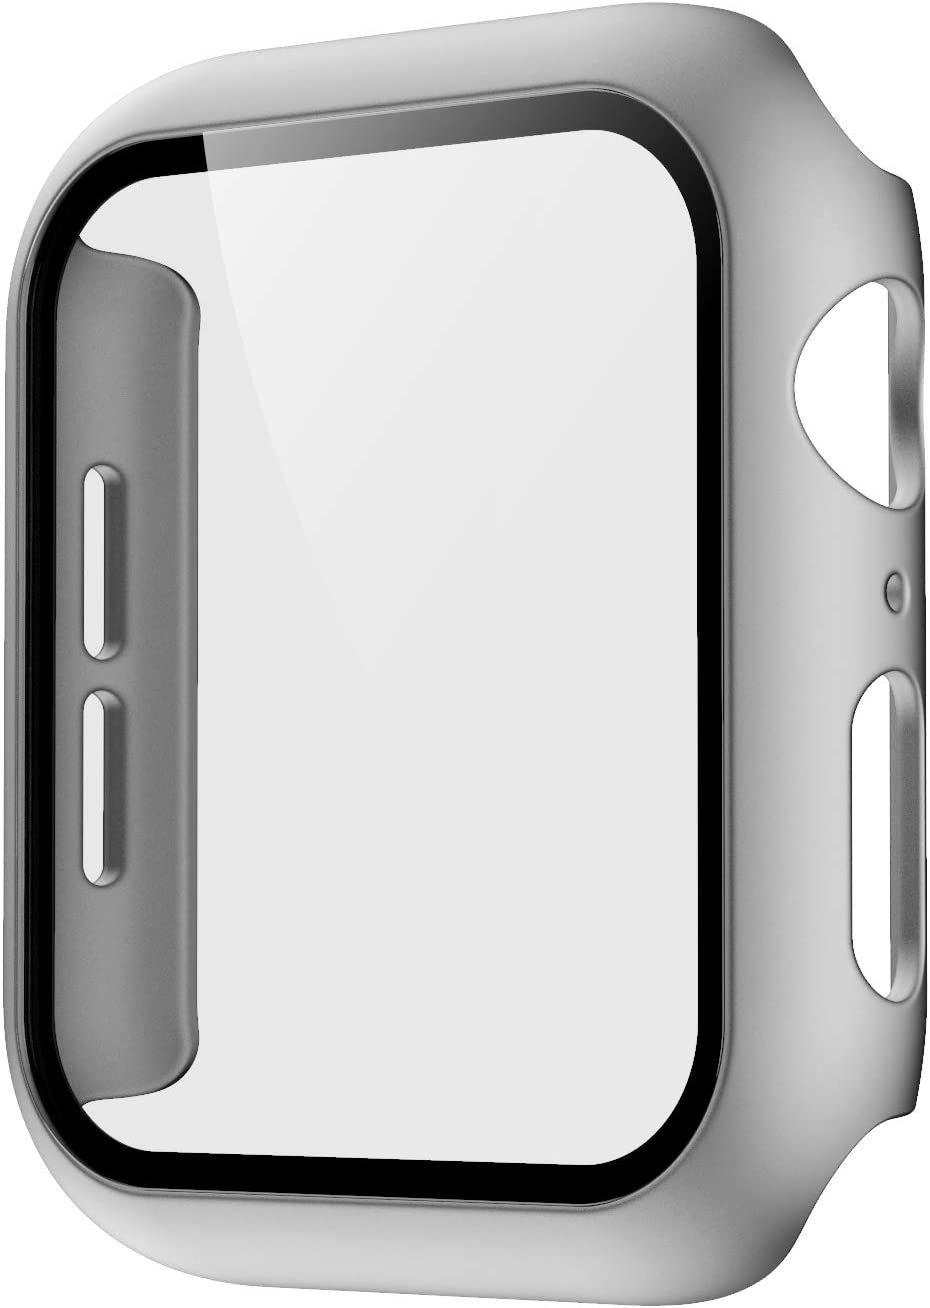 Pokanic Compatible with Apple Watch SE 6 5 4 3 2 1 Series iWatch 9H Tempered Glass Case Full Body Screen Protector Cover Wireless Charge Light Weight Scratch Resistant Proof (Silver, 42mm)